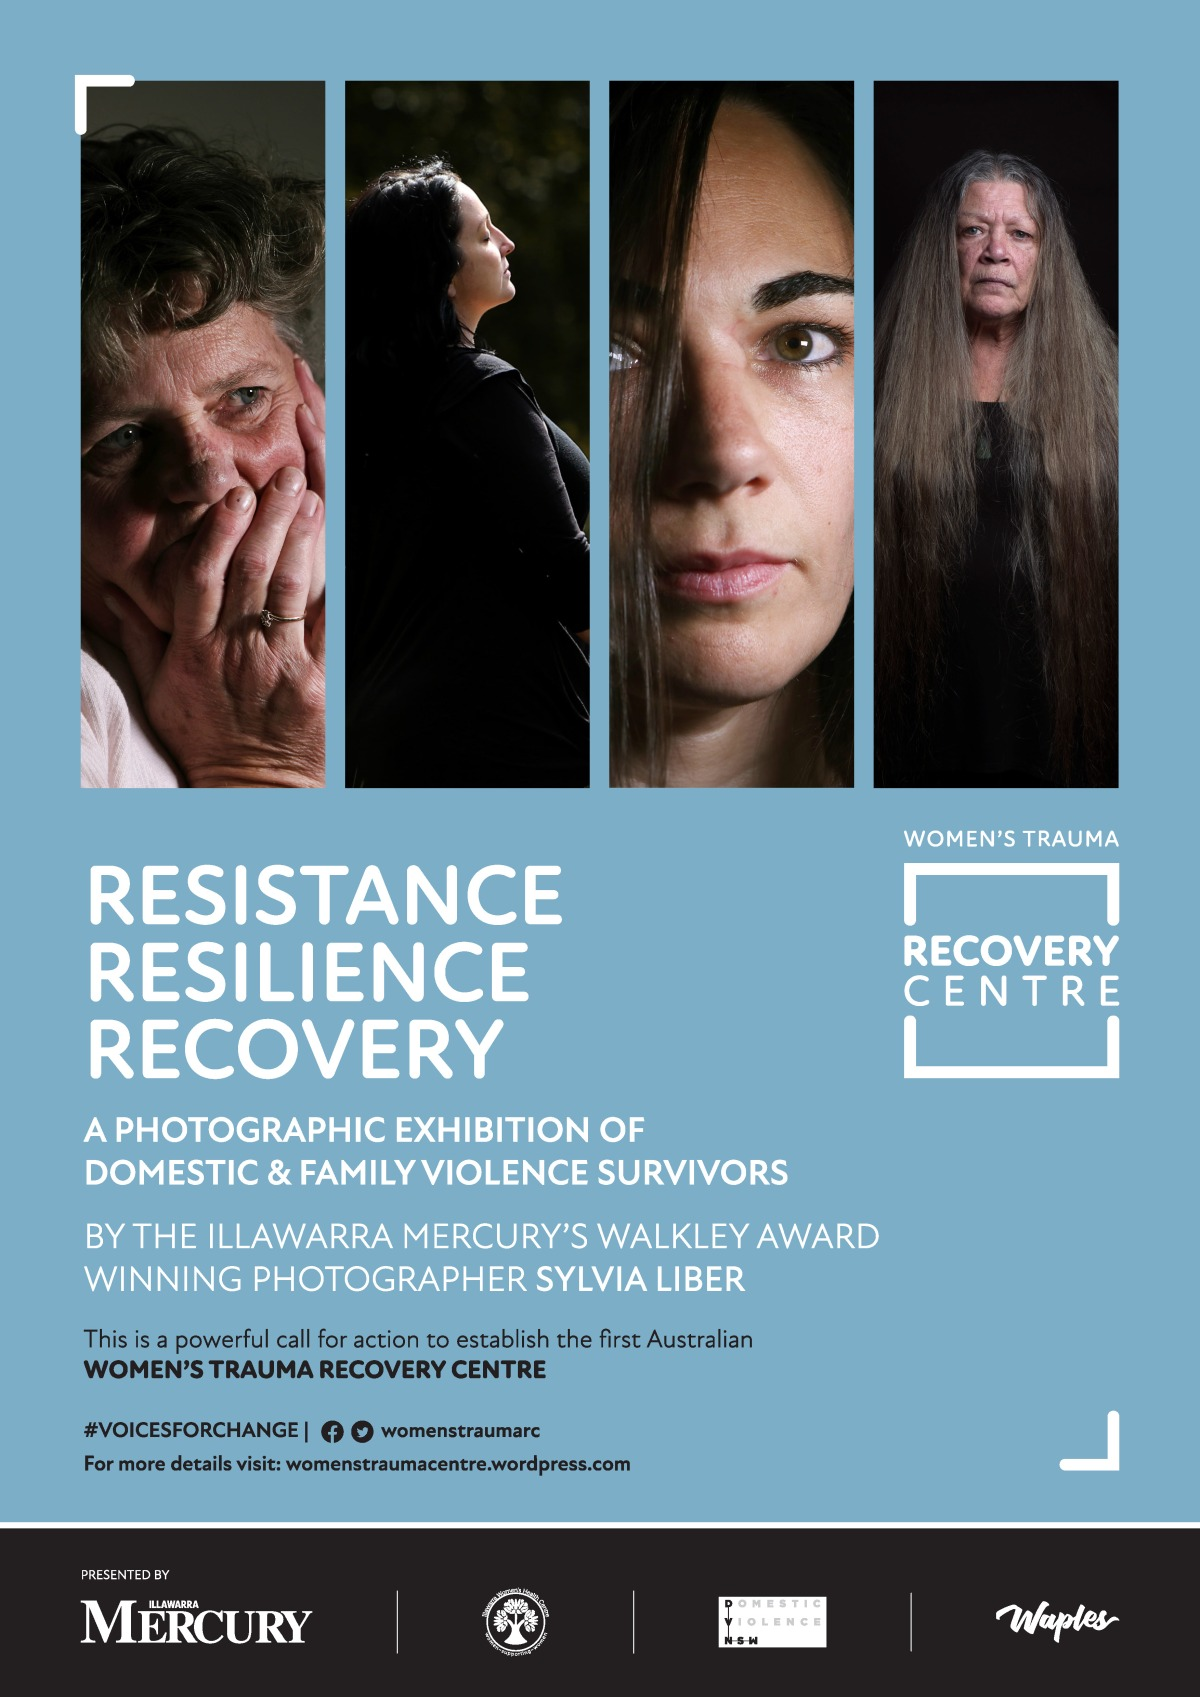 DAY THIRTEEN: A Women's Trauma Recovery Centre: A Call to Action